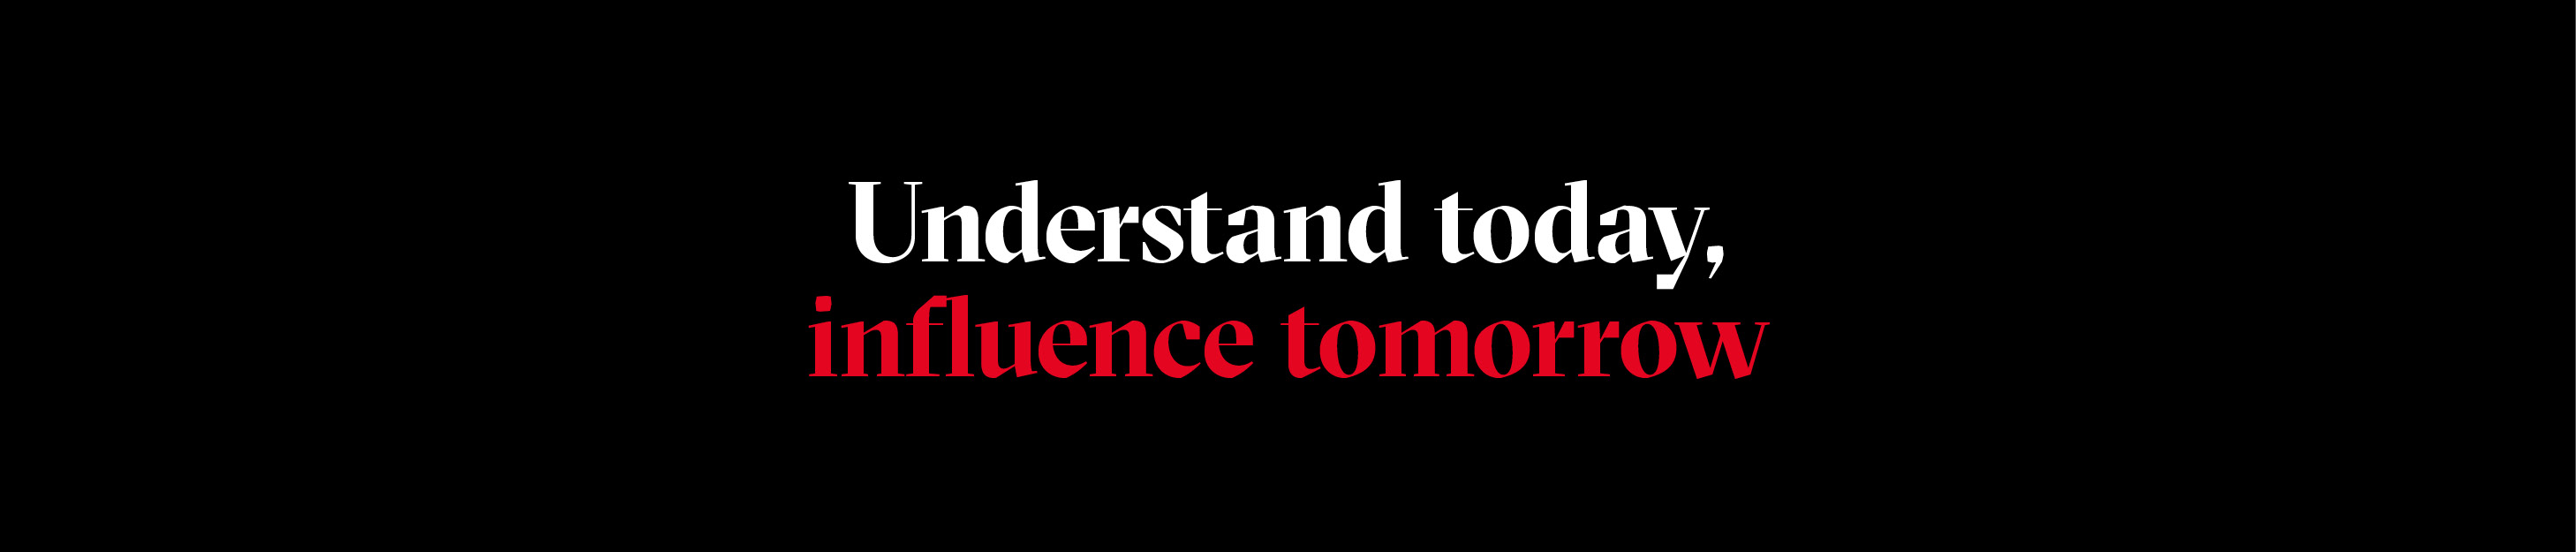 Understand today, influence tomorrow